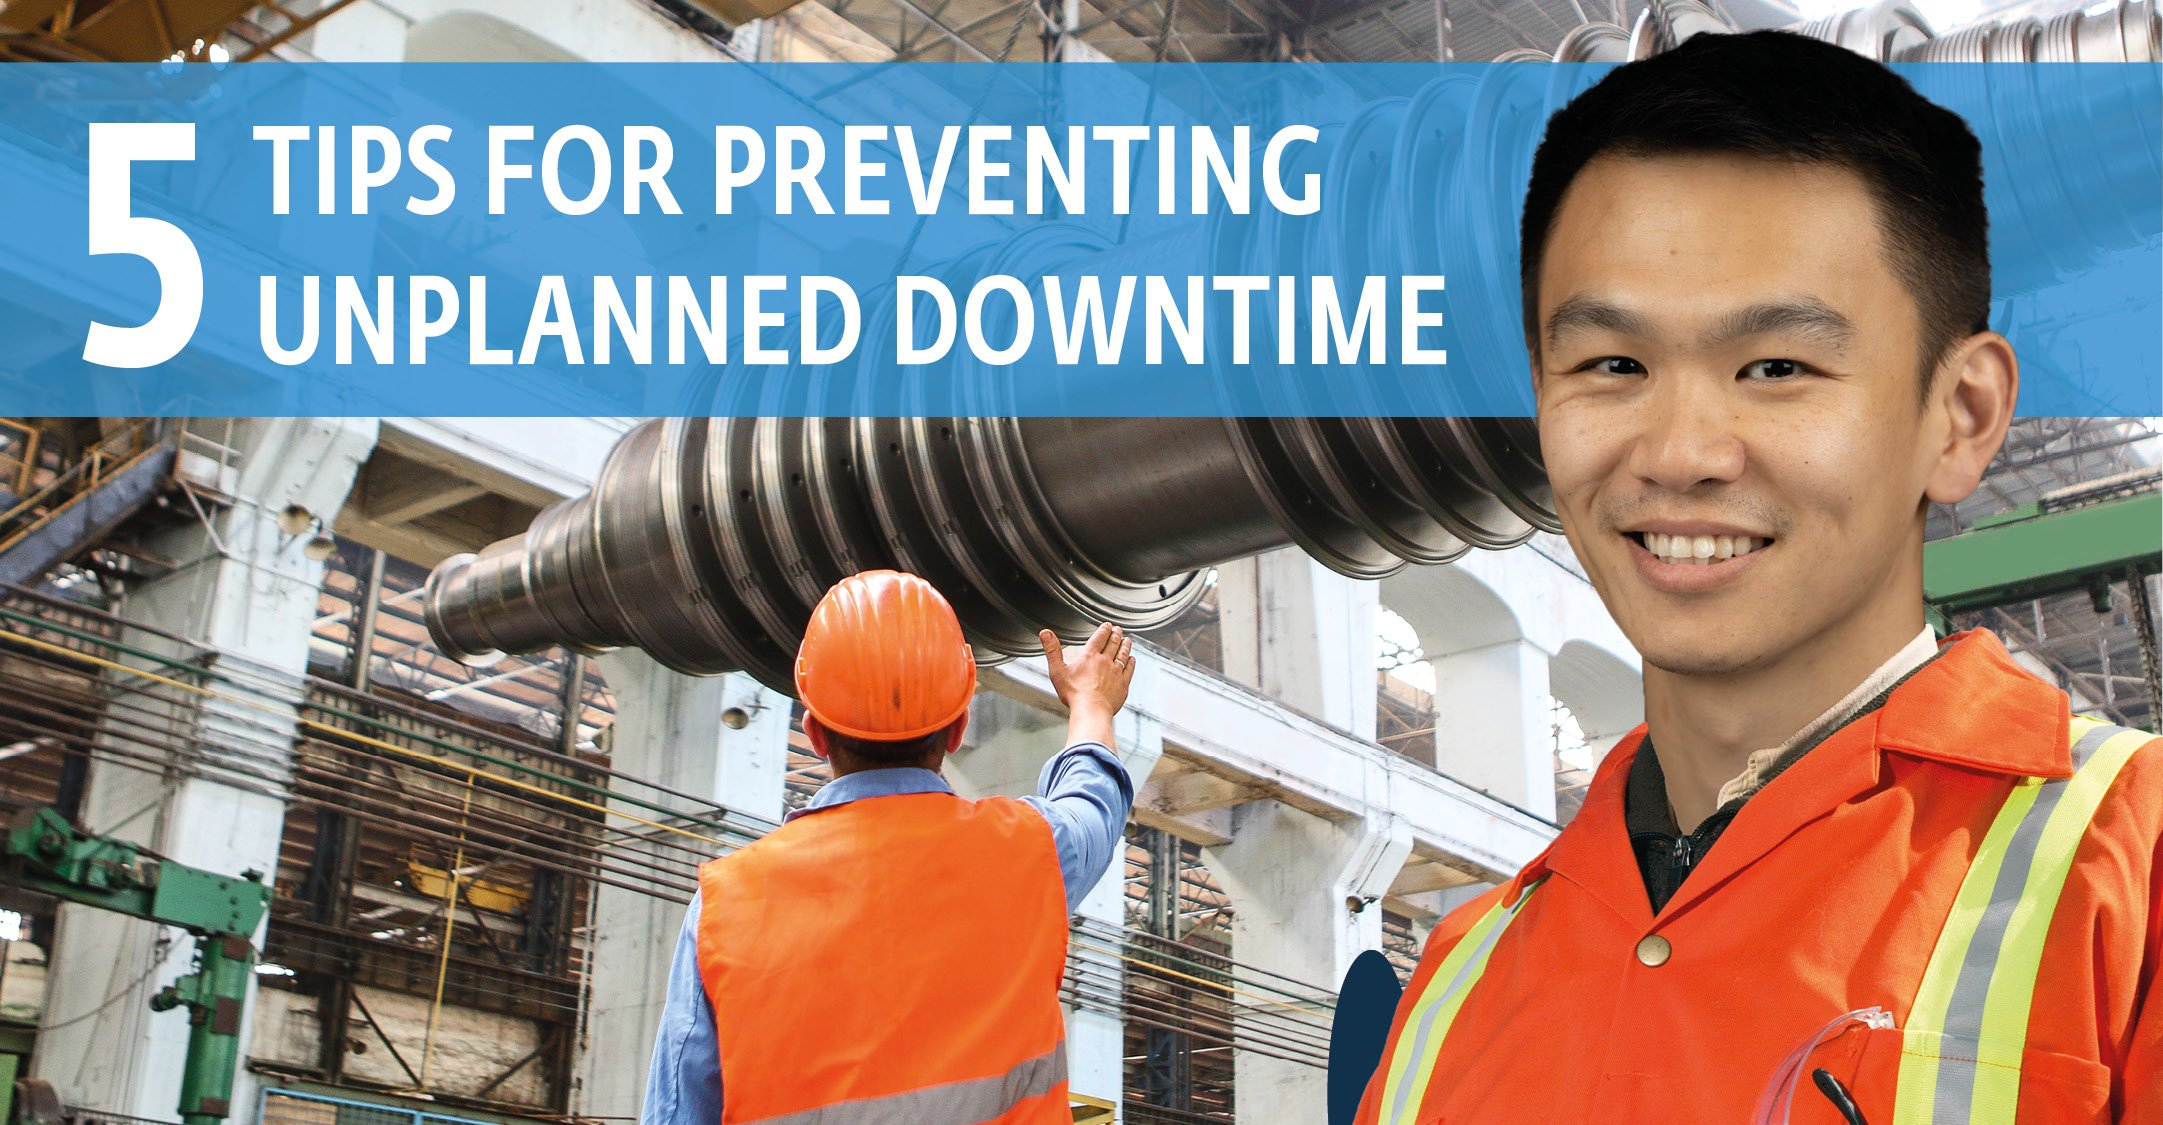 5 tips for preventing unplanned downtime